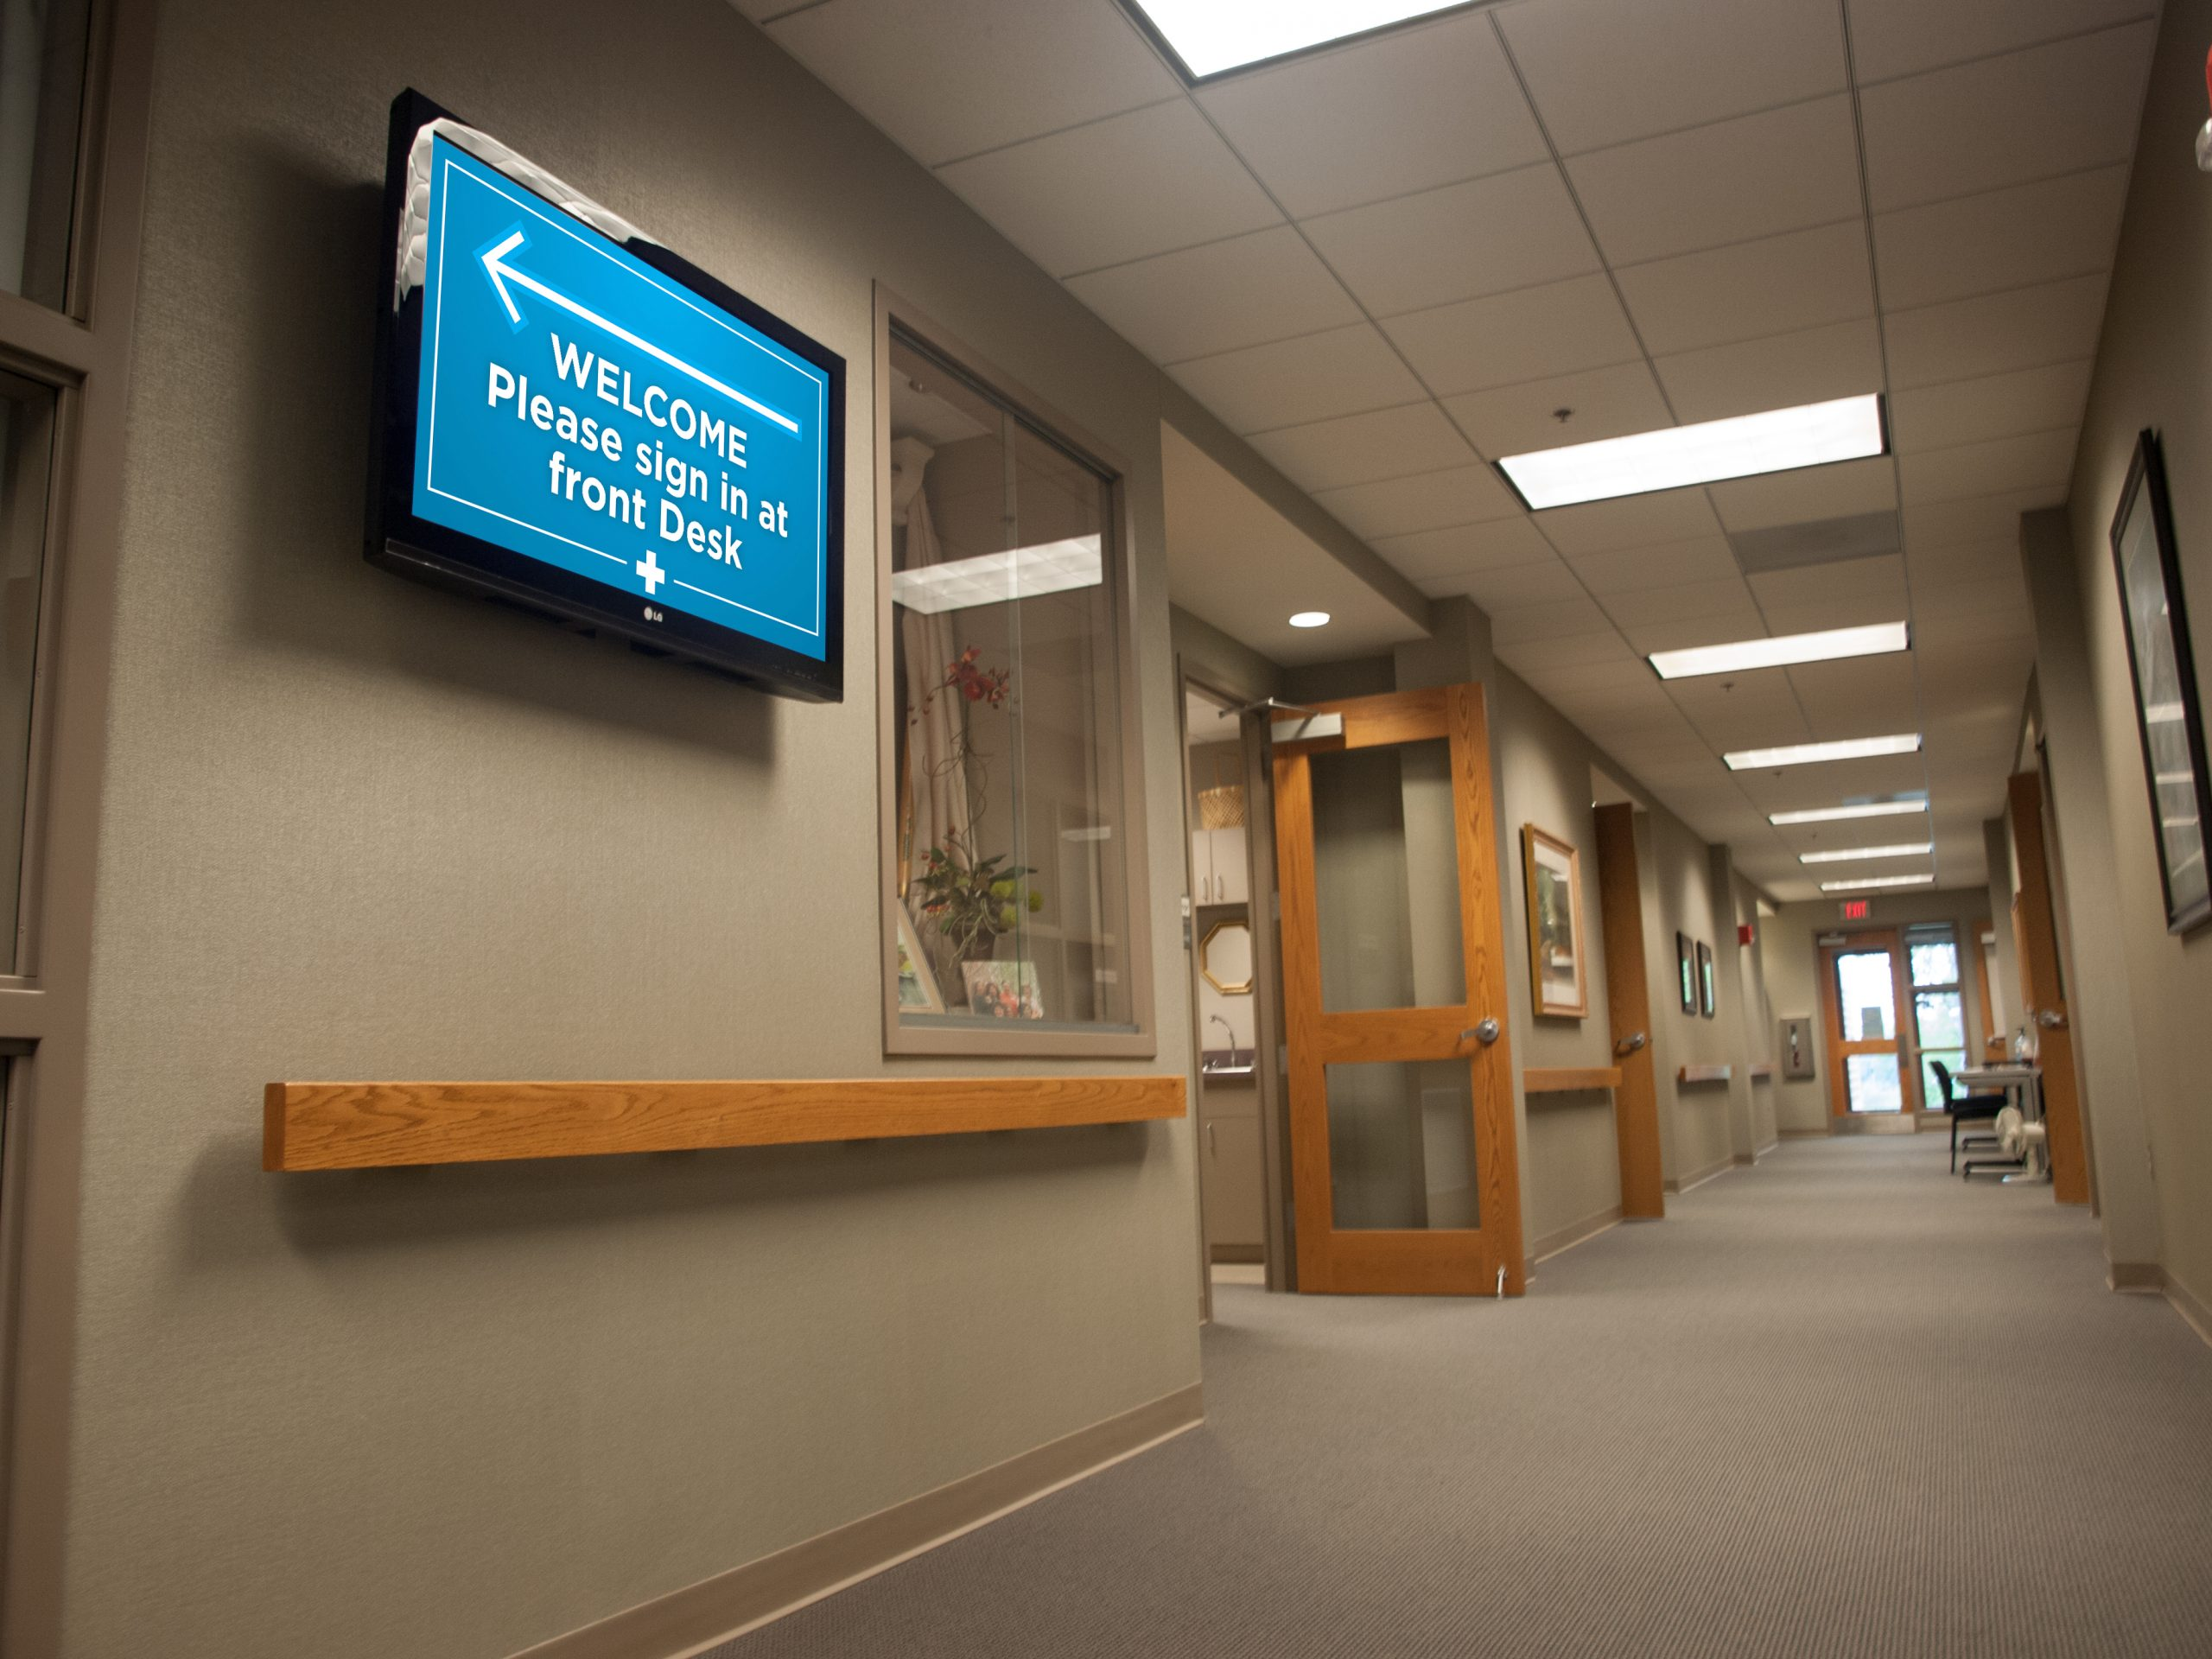 Healthcare Facilities Can Change the Flow of Waiting Rooms With Digital Screens Post COVID-19